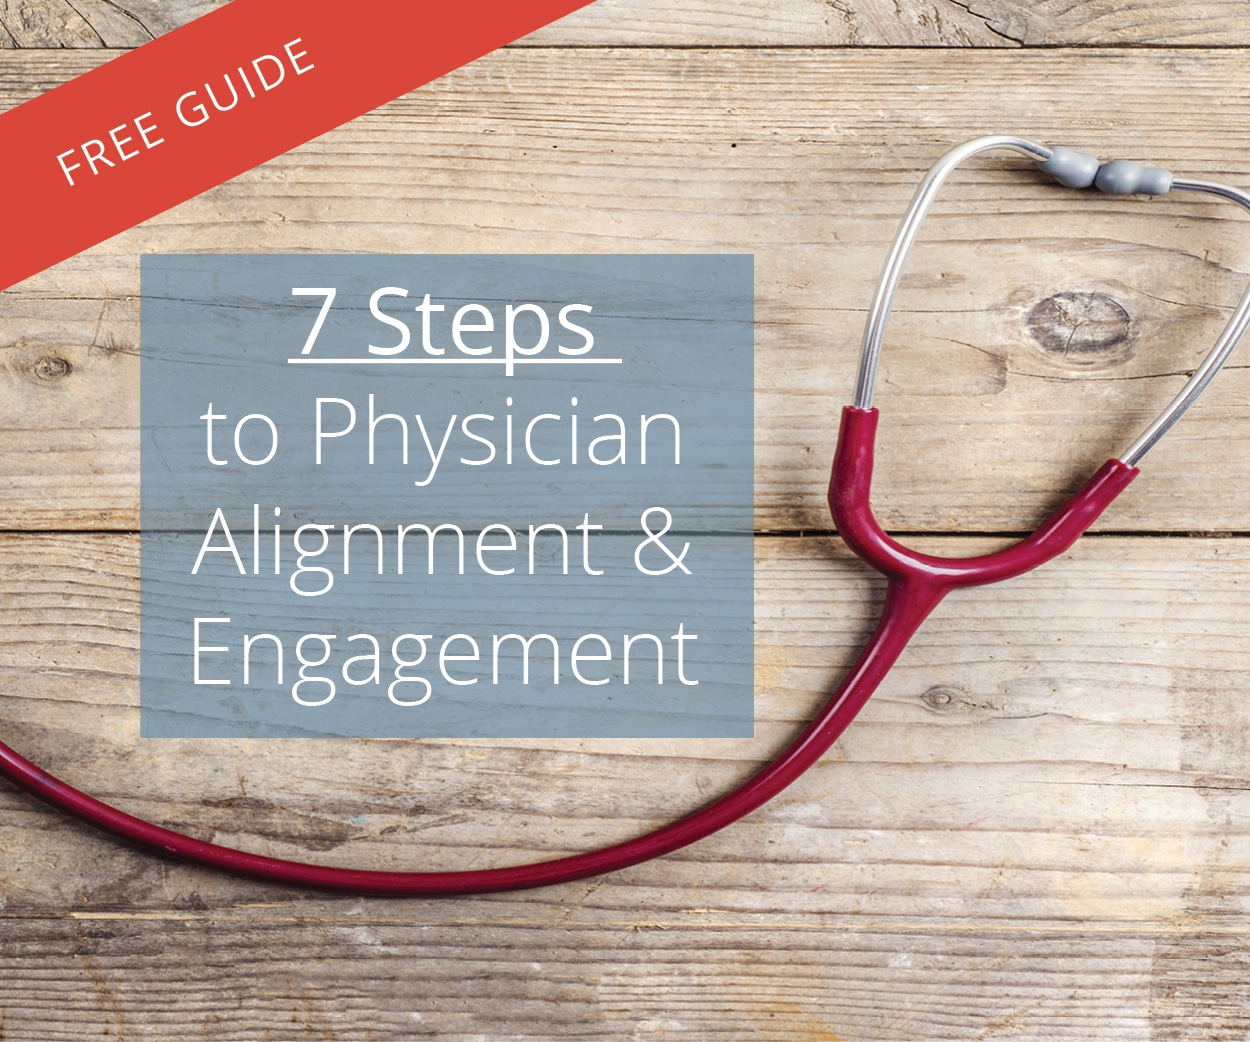 Free Guide: Physician Alignment & Engagement